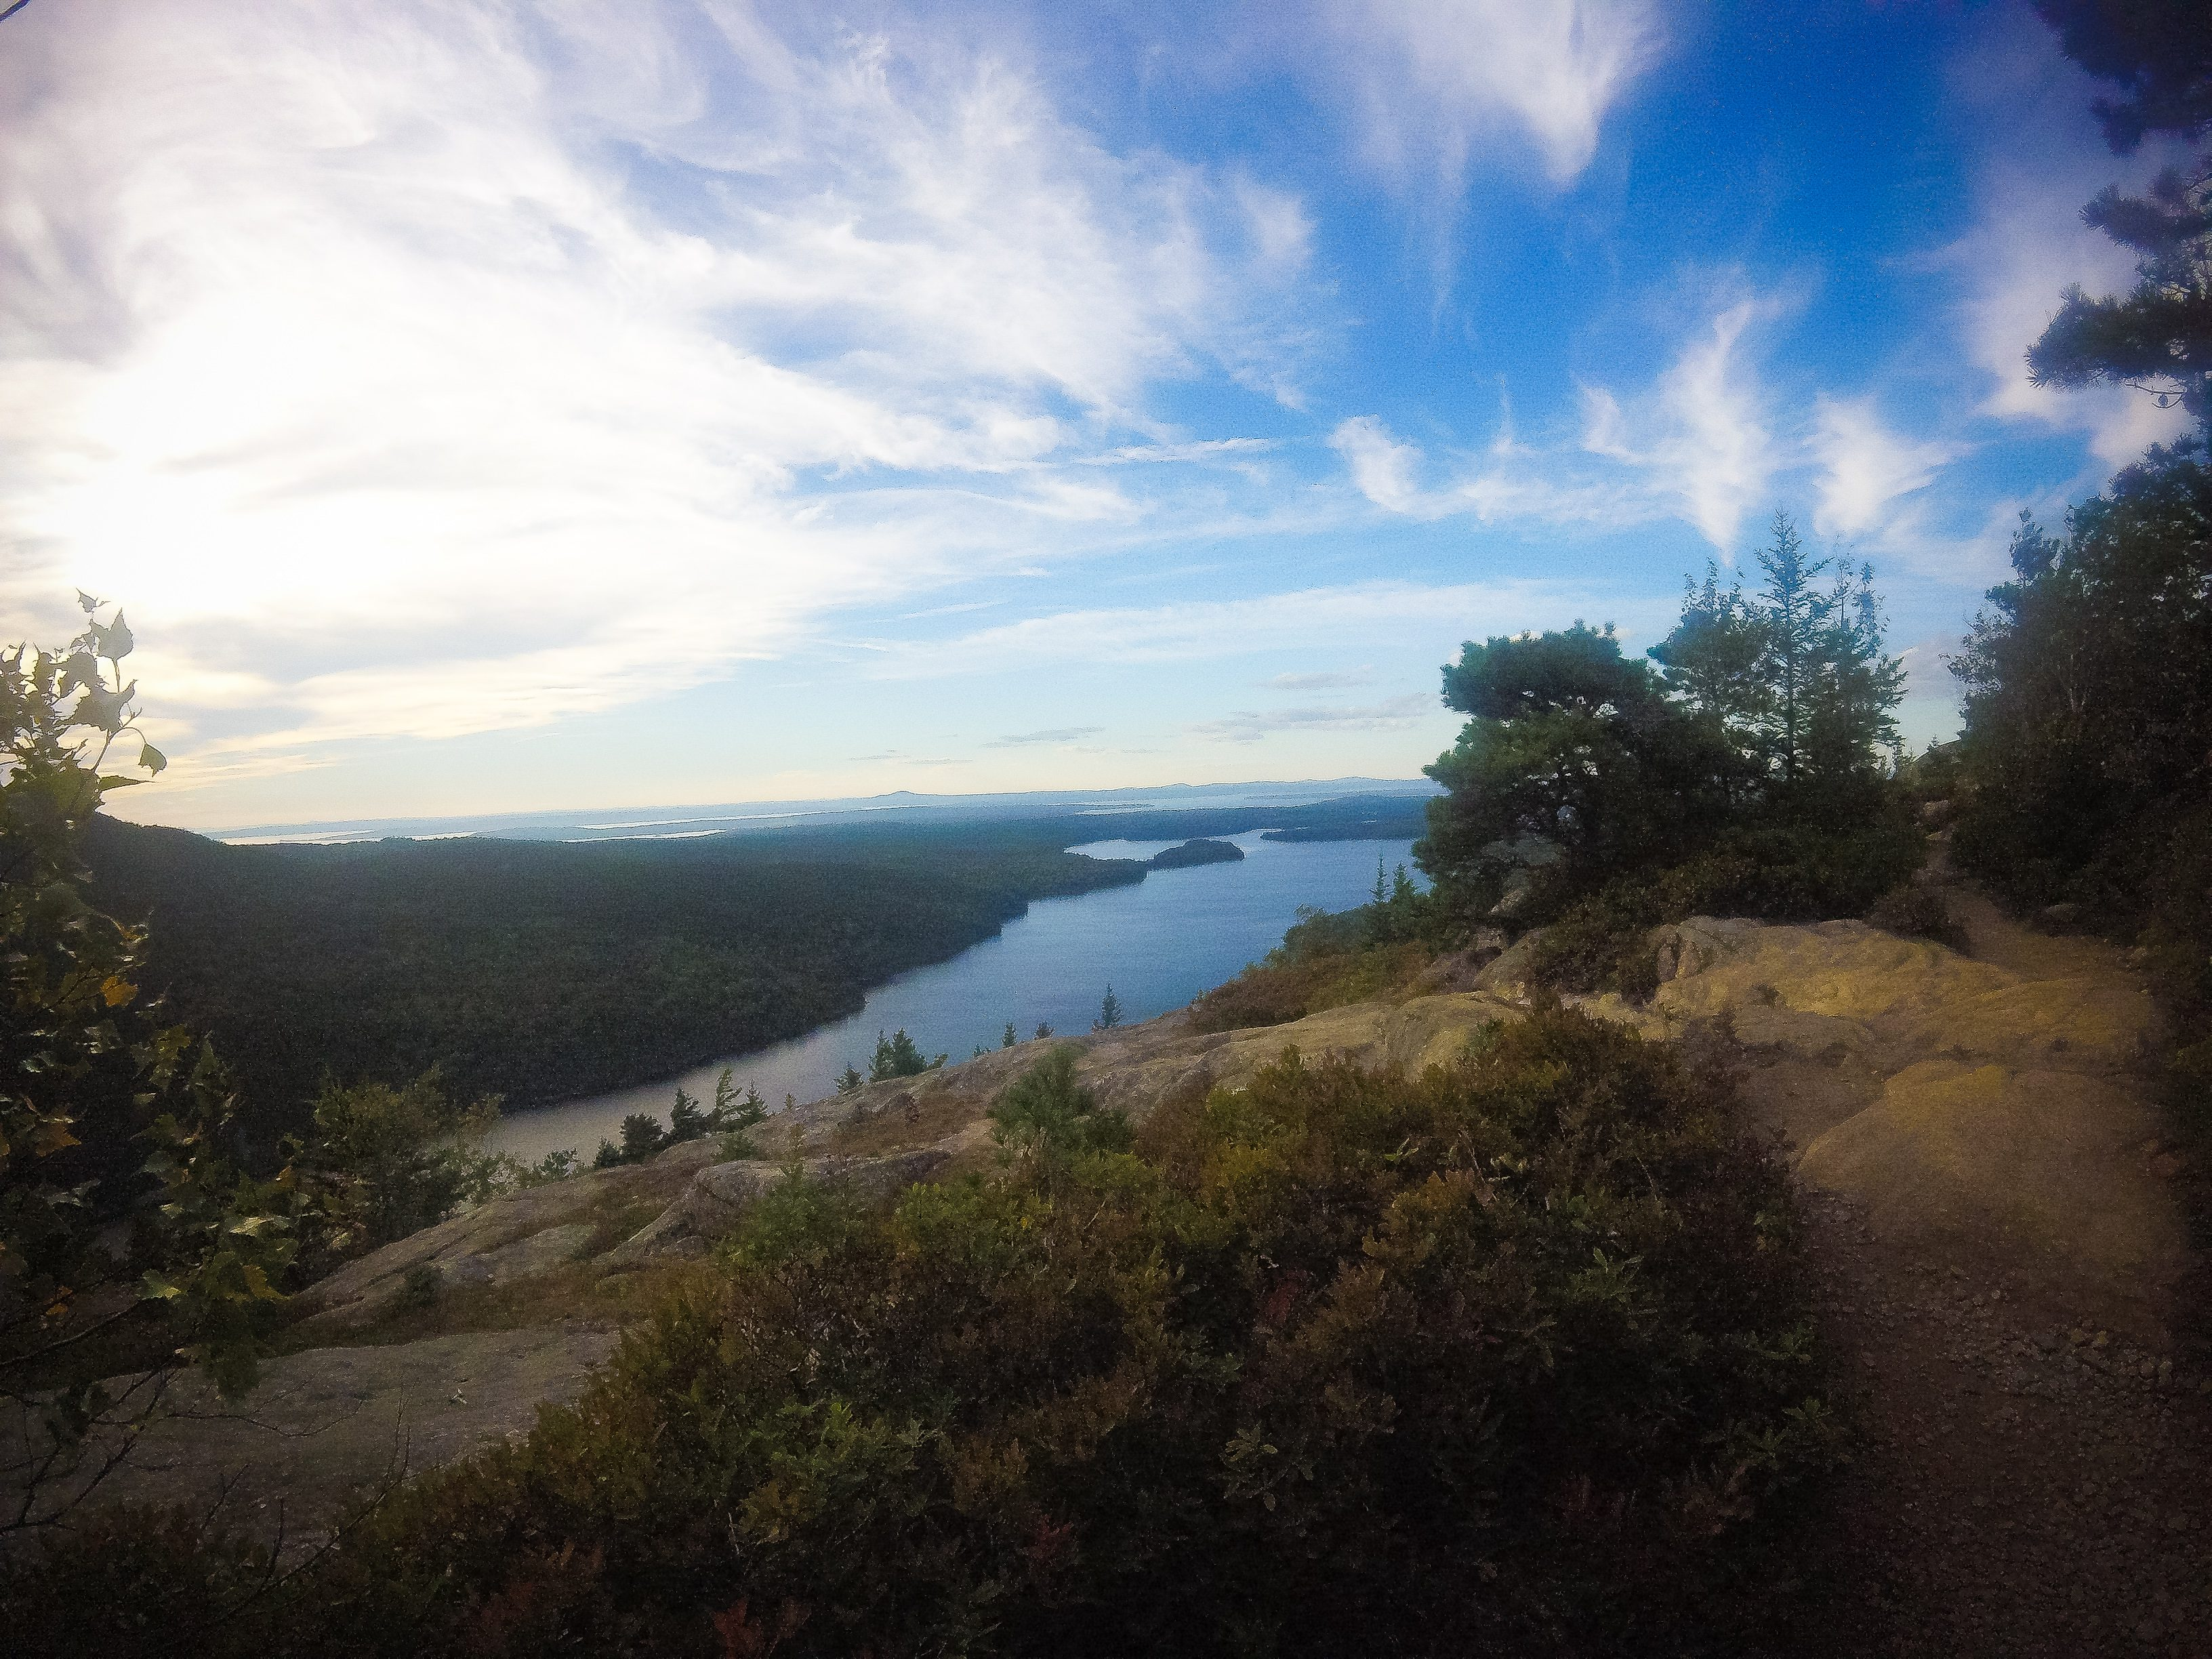 Hiking Beech Mountain in Acadia National Park